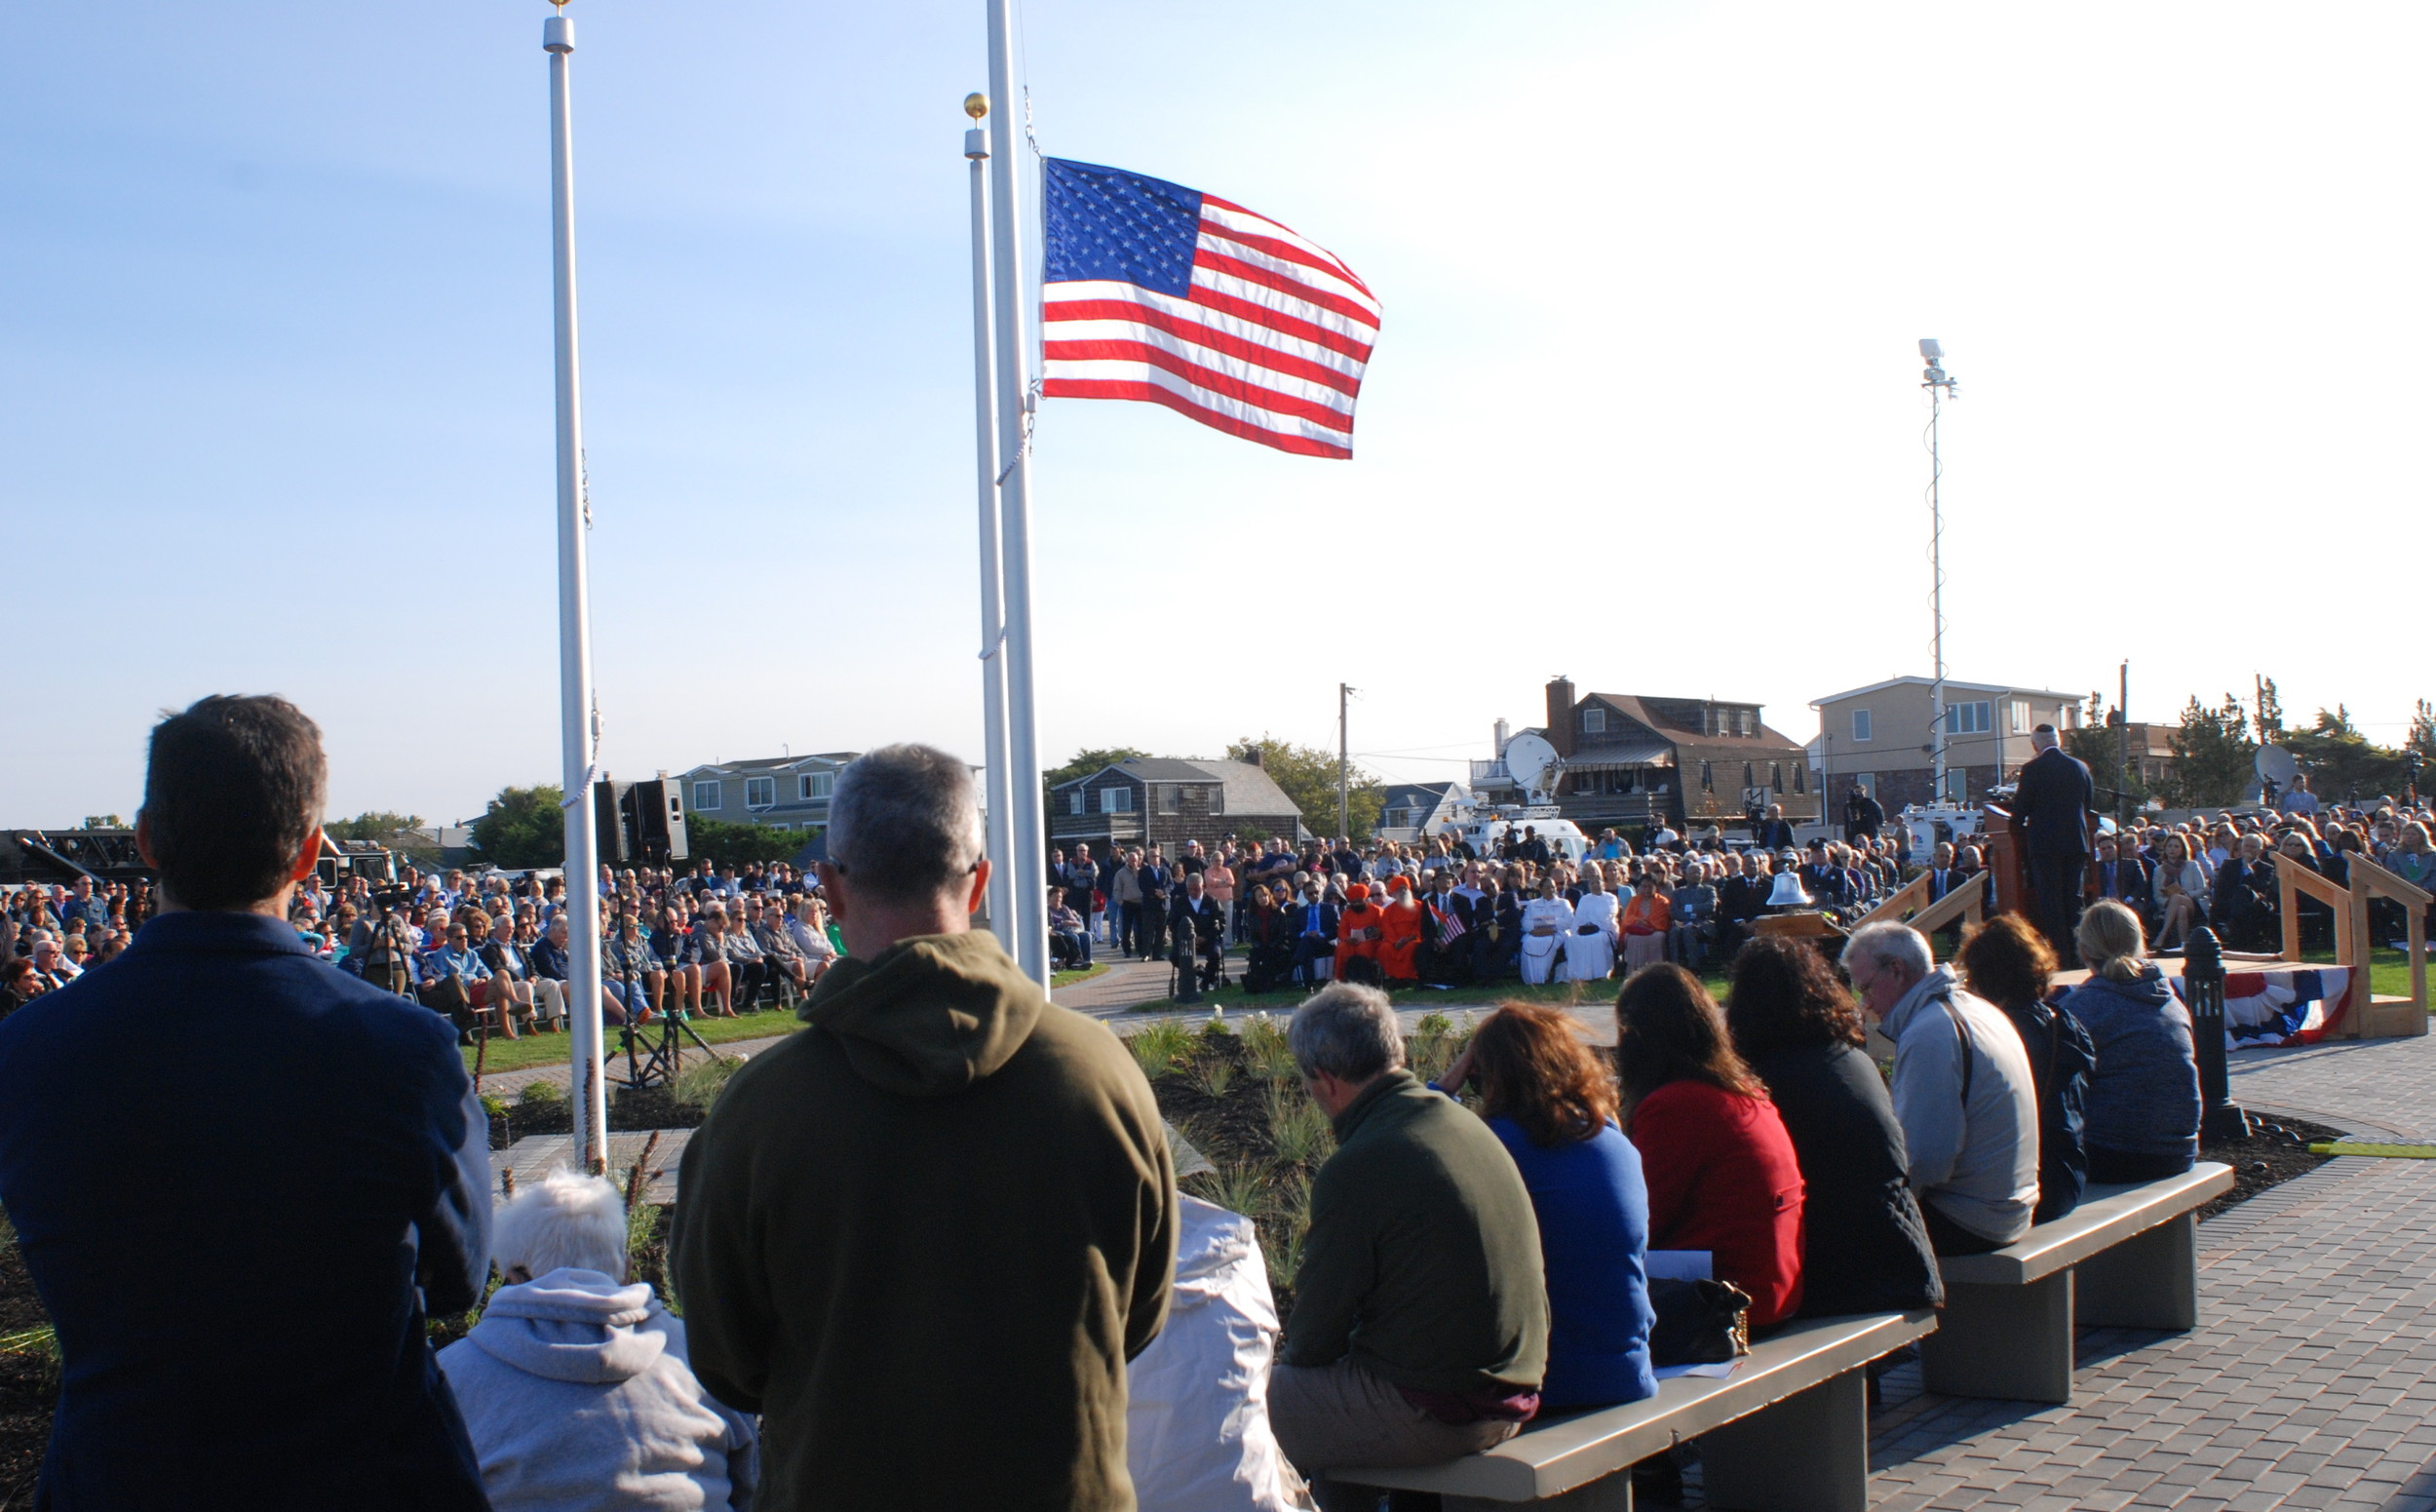 The Town of Hempstead estimated that more than a thousand people attended the dedication ceremony.